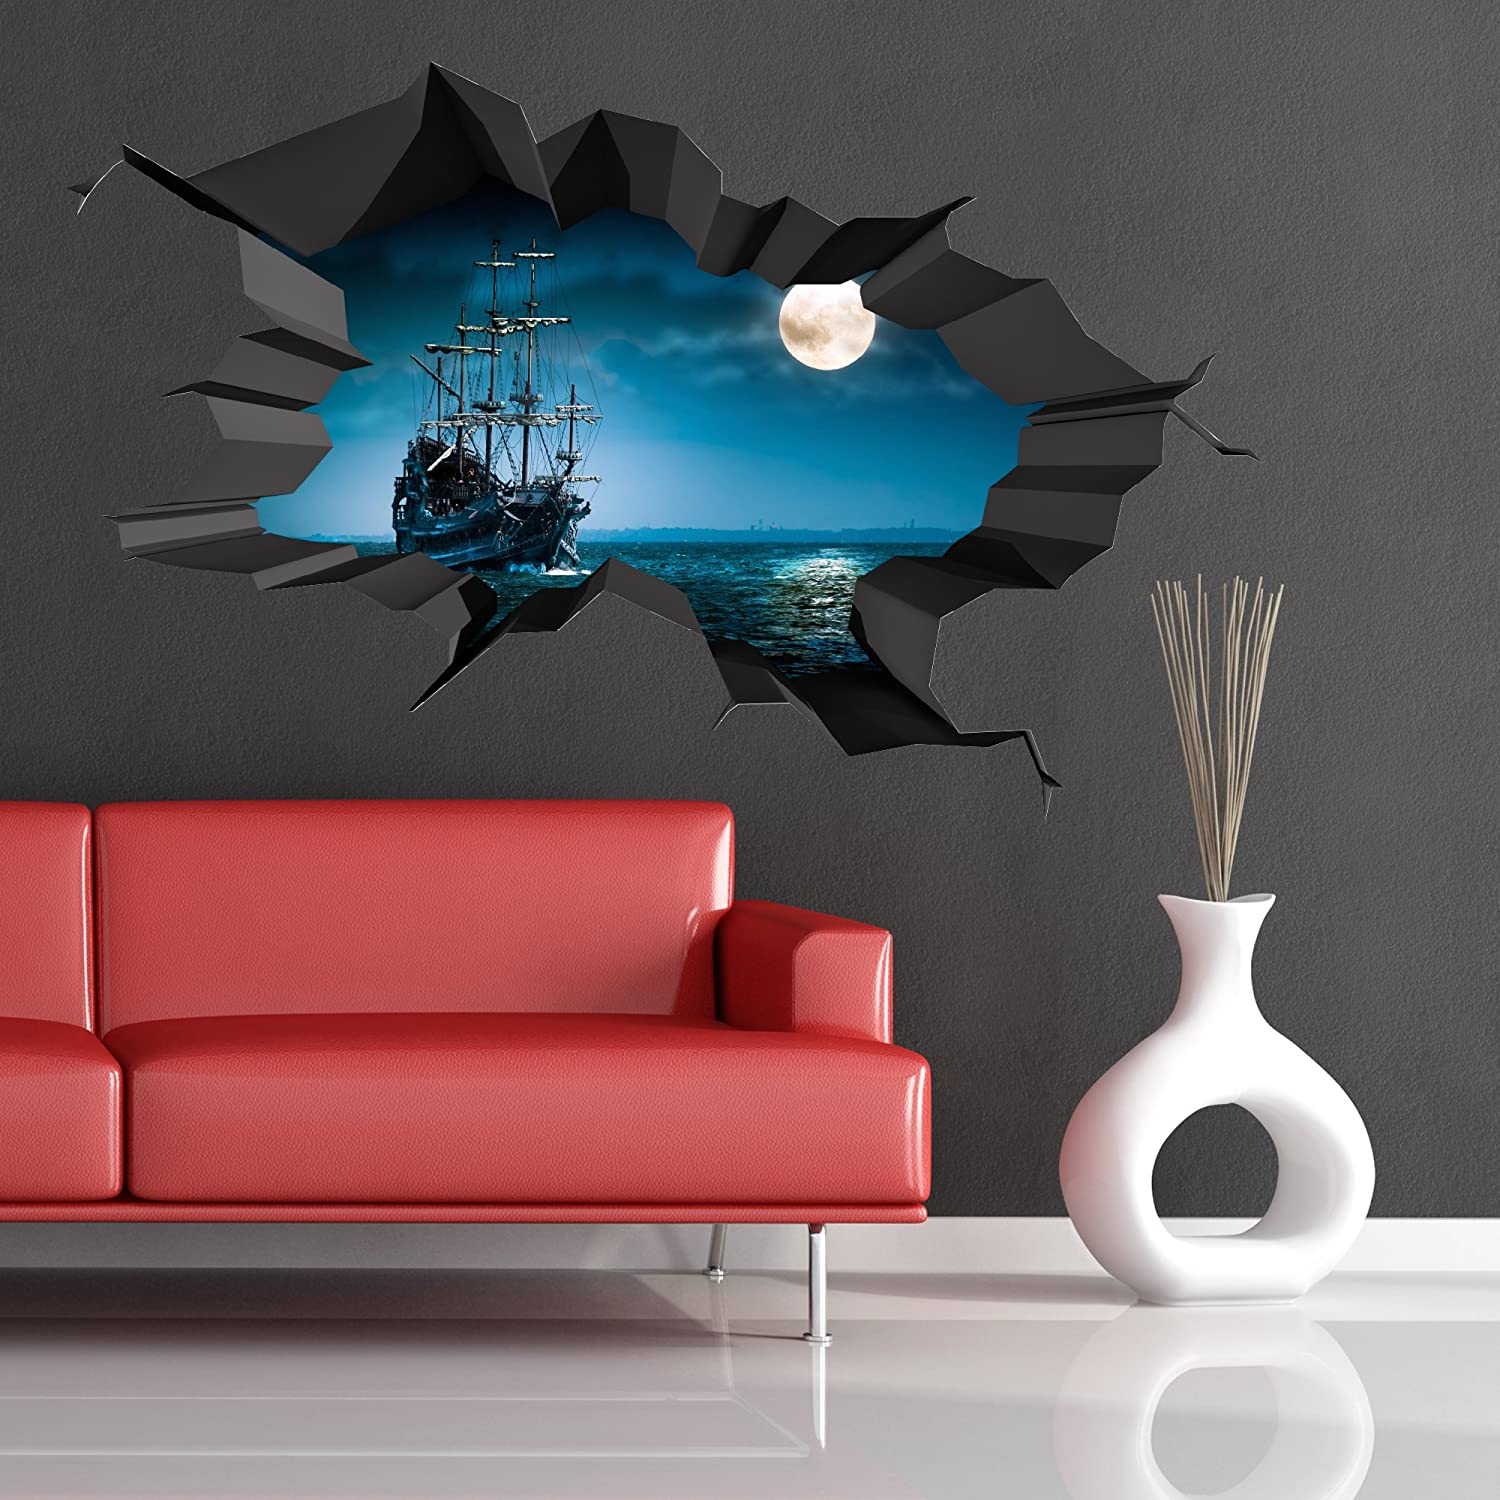 PIRATE SHIP SEA CAVE PORTHOLE MOON CRACKED 3D WALL ART STICKER BOYS CHILDu0027S  DECAL MURAL NEW 1: Amazon.co.uk: DIY U0026 Tools Part 12